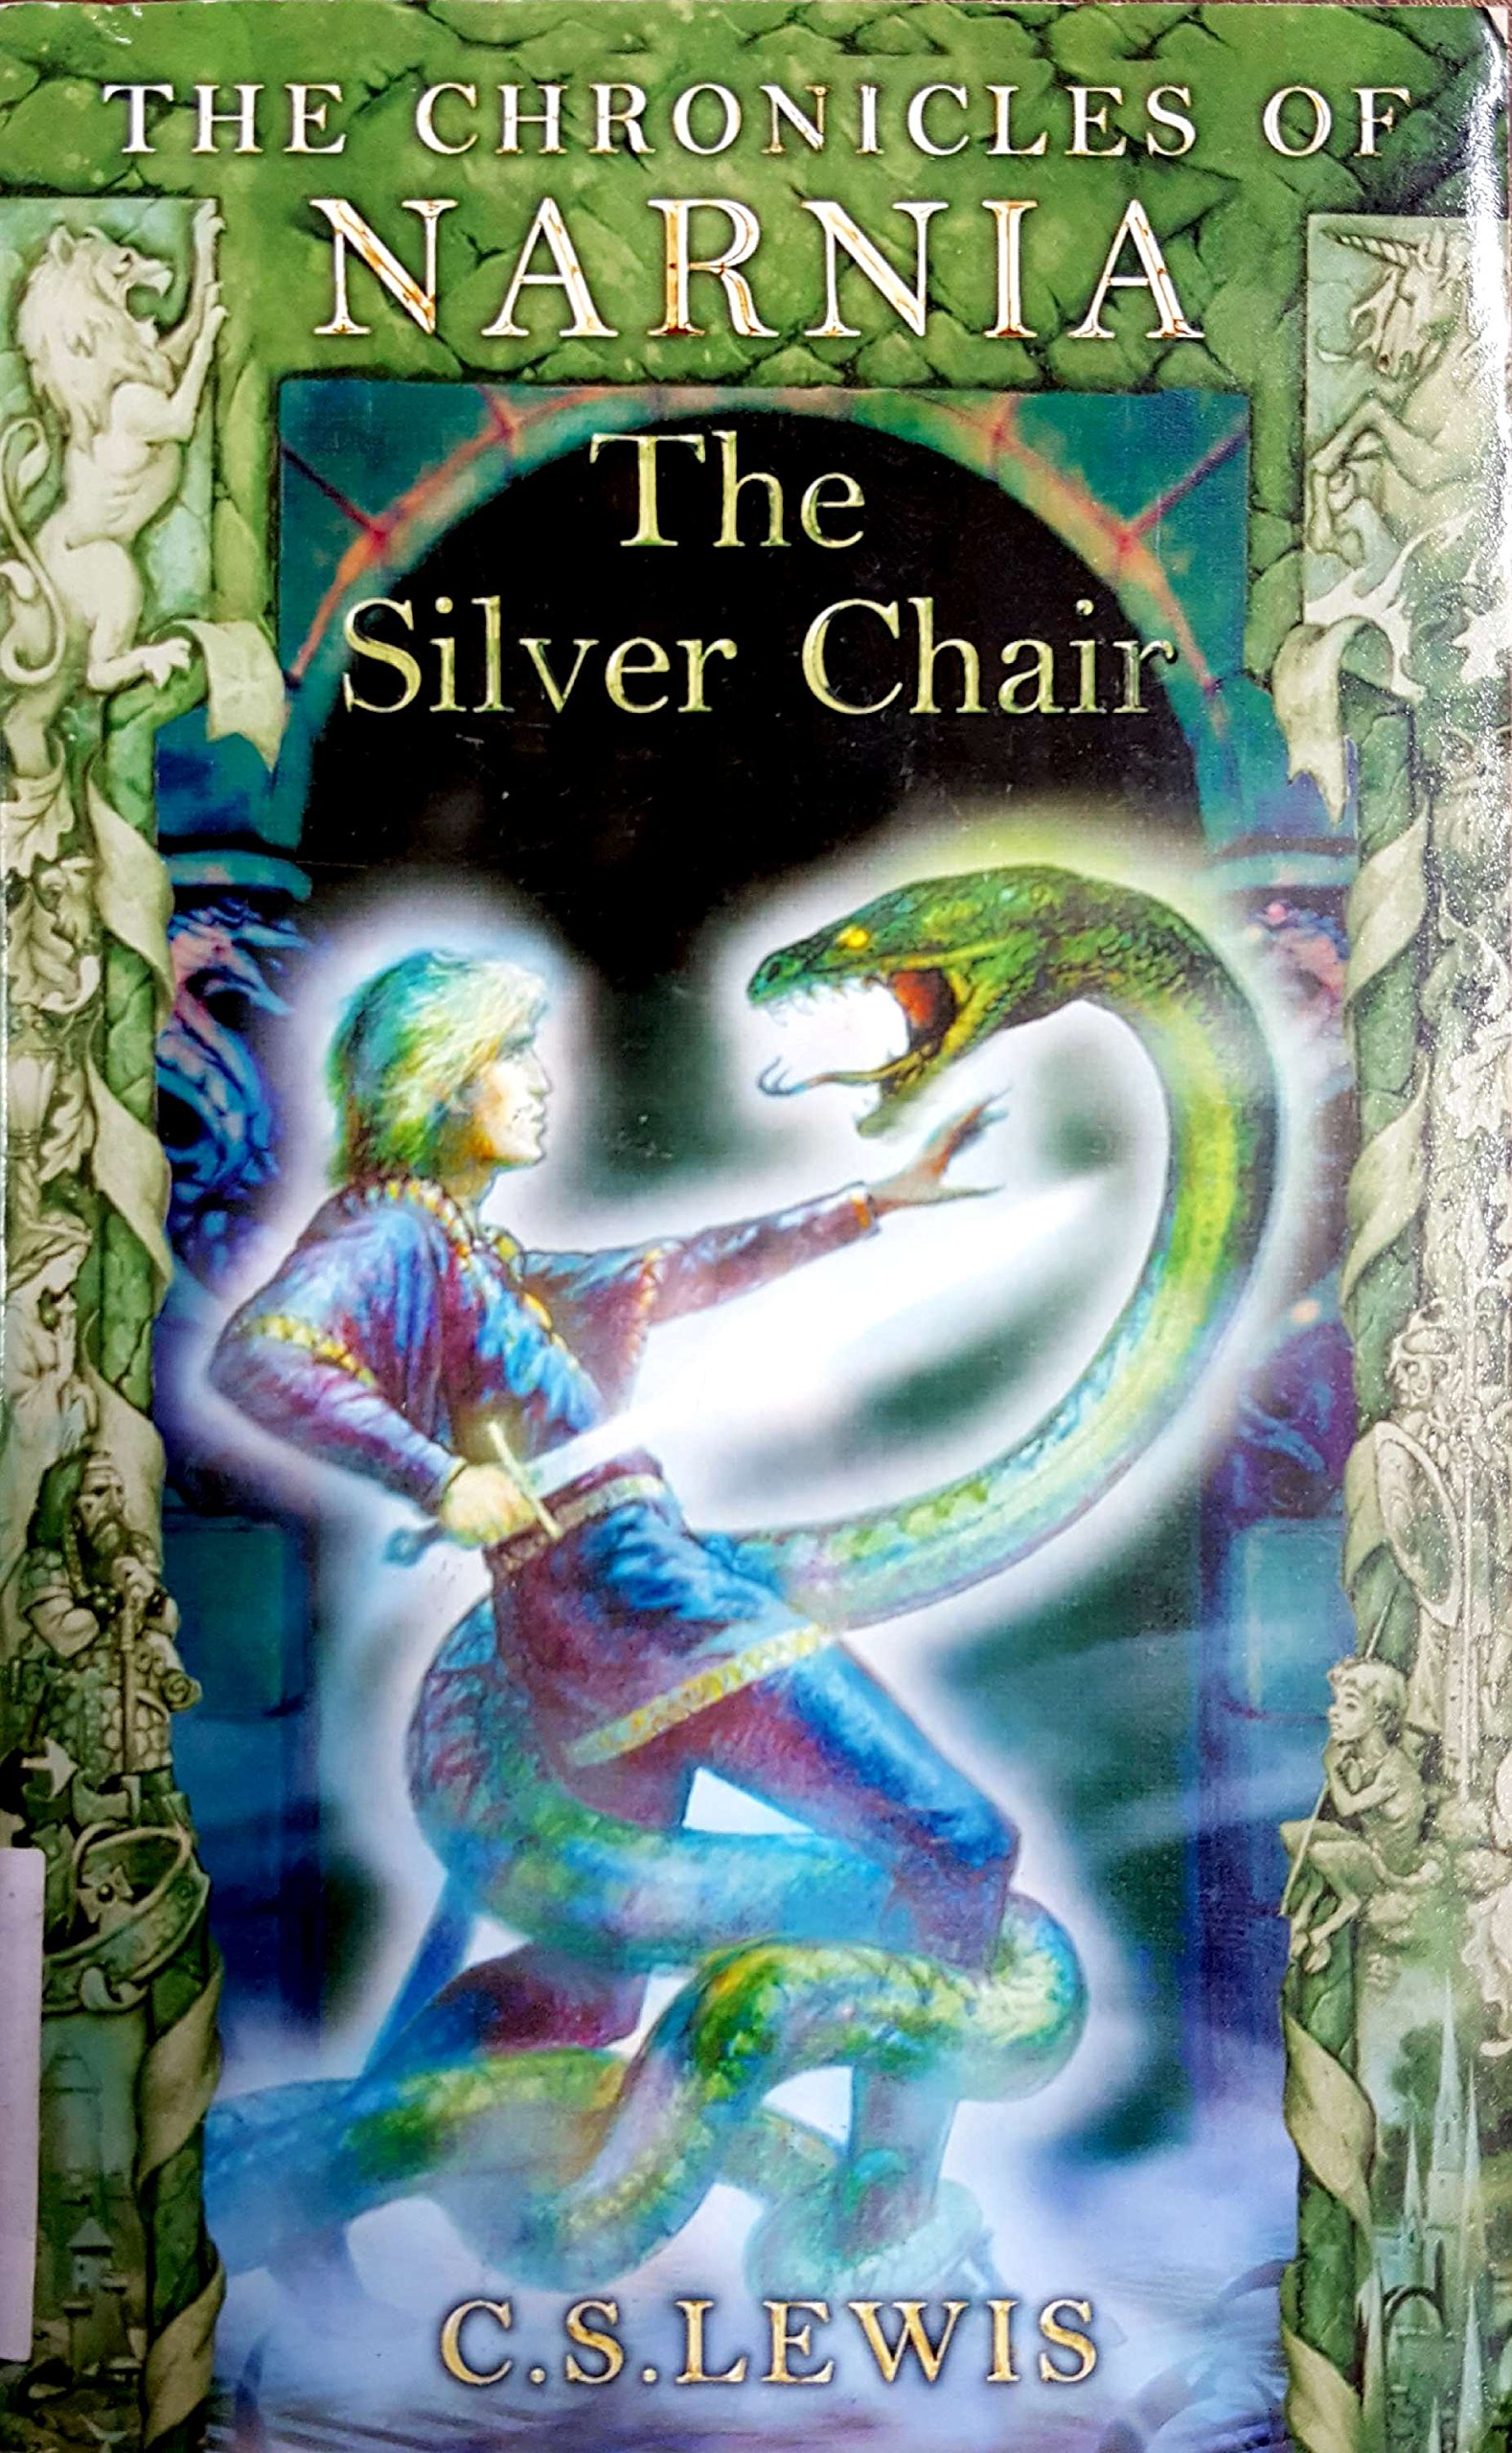 The Silver Chair The Chronicles of Narnia Book 6 C S Lewis